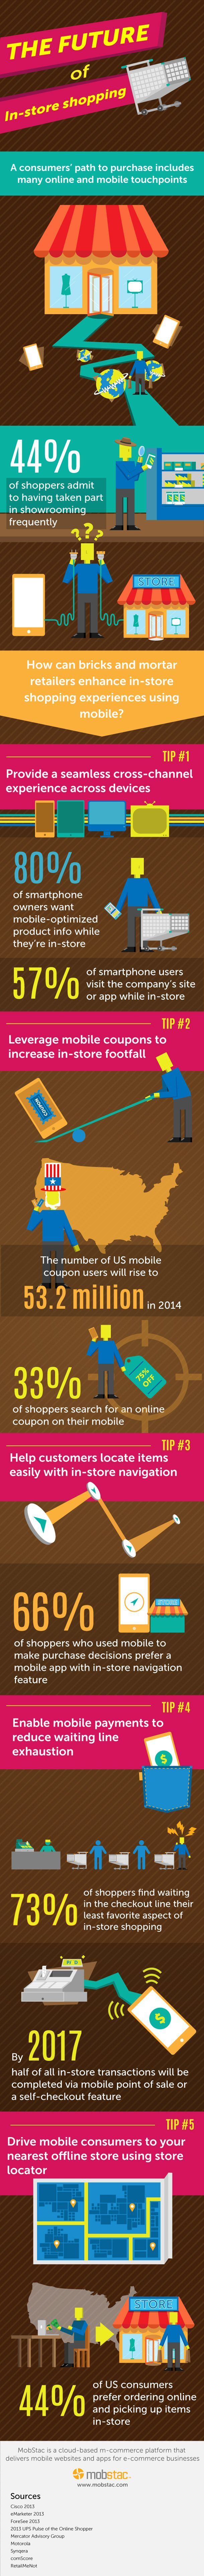 Mobile Phones Are Changing Retail Here s How March 11 2014 Entrepreneur Infographic